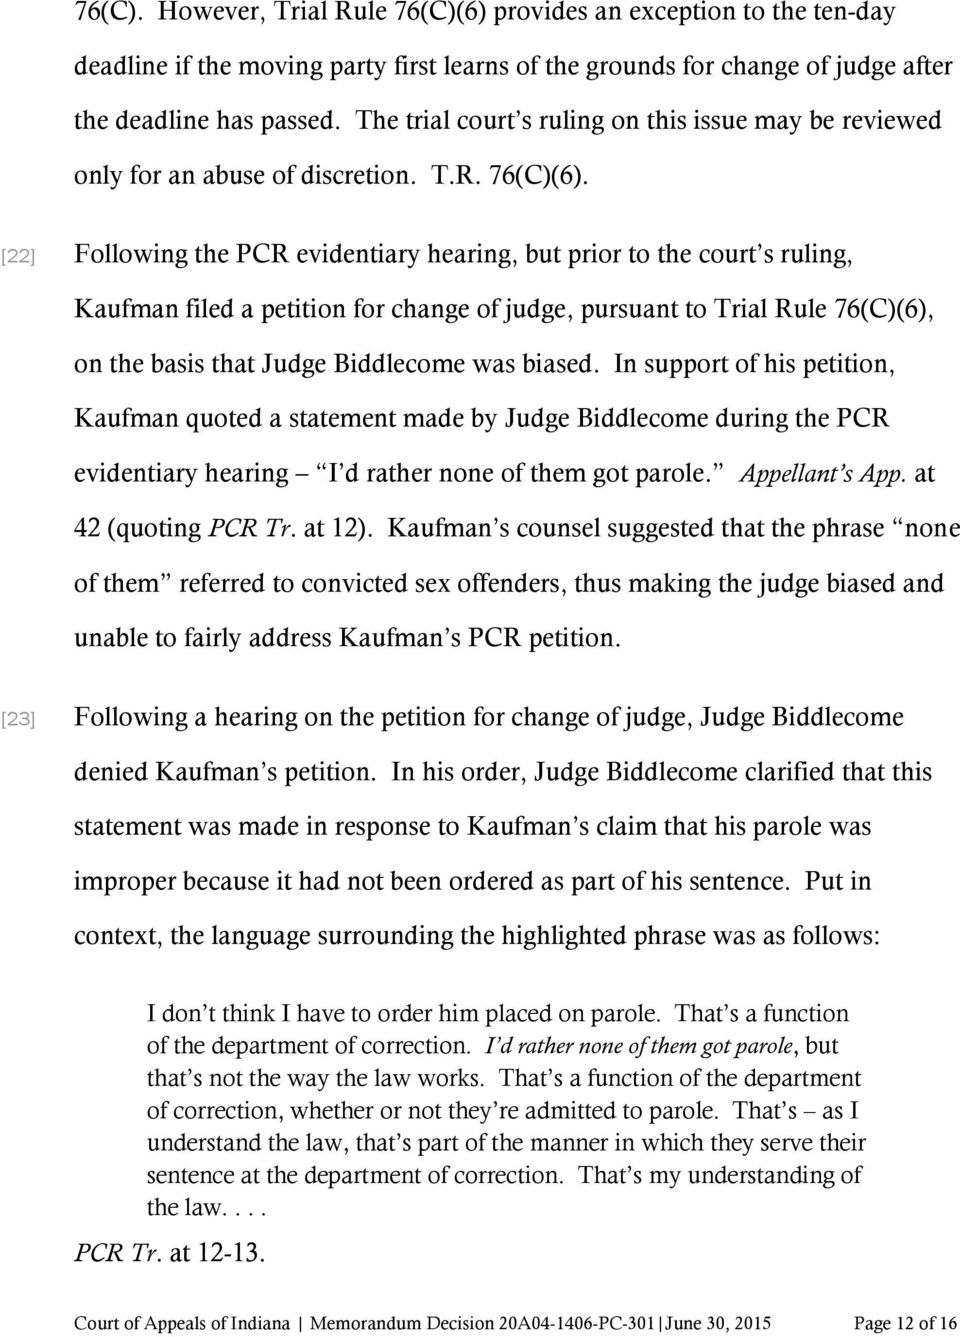 [22] Following the PCR evidentiary hearing, but prior to the court s ruling, Kaufman filed a petition for change of judge, pursuant to Trial Rule 76(C)(6), on the basis that Judge Biddlecome was